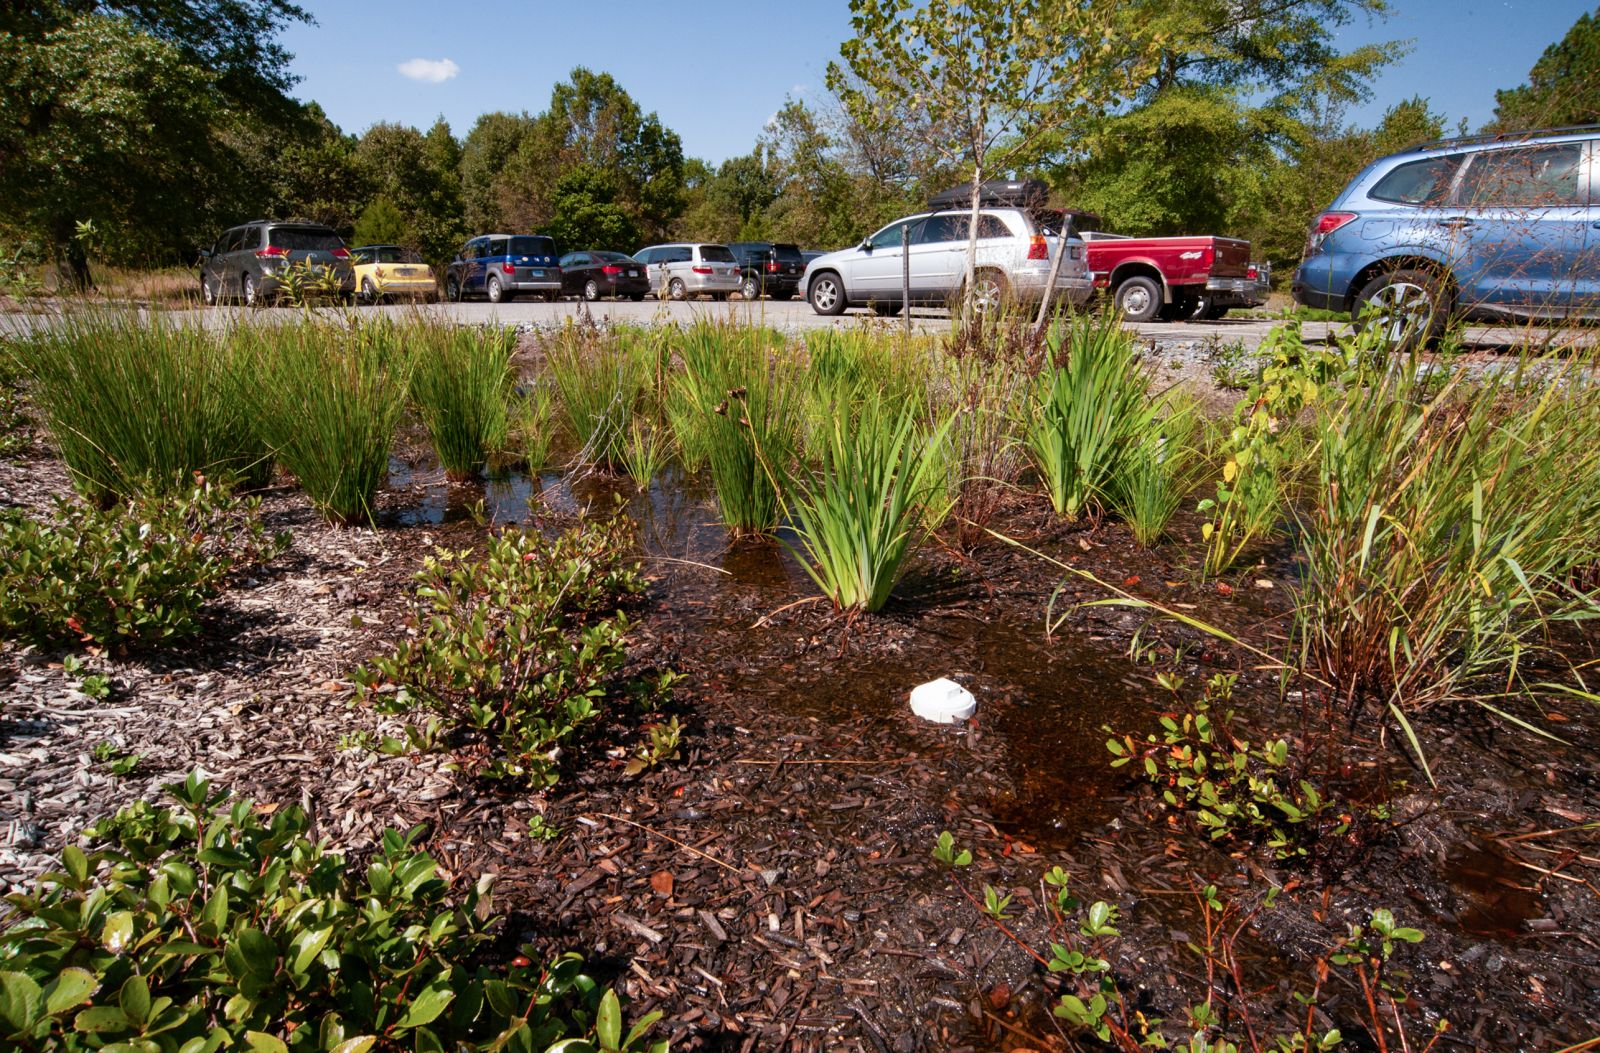 Adkins Arboreum parking lot garden